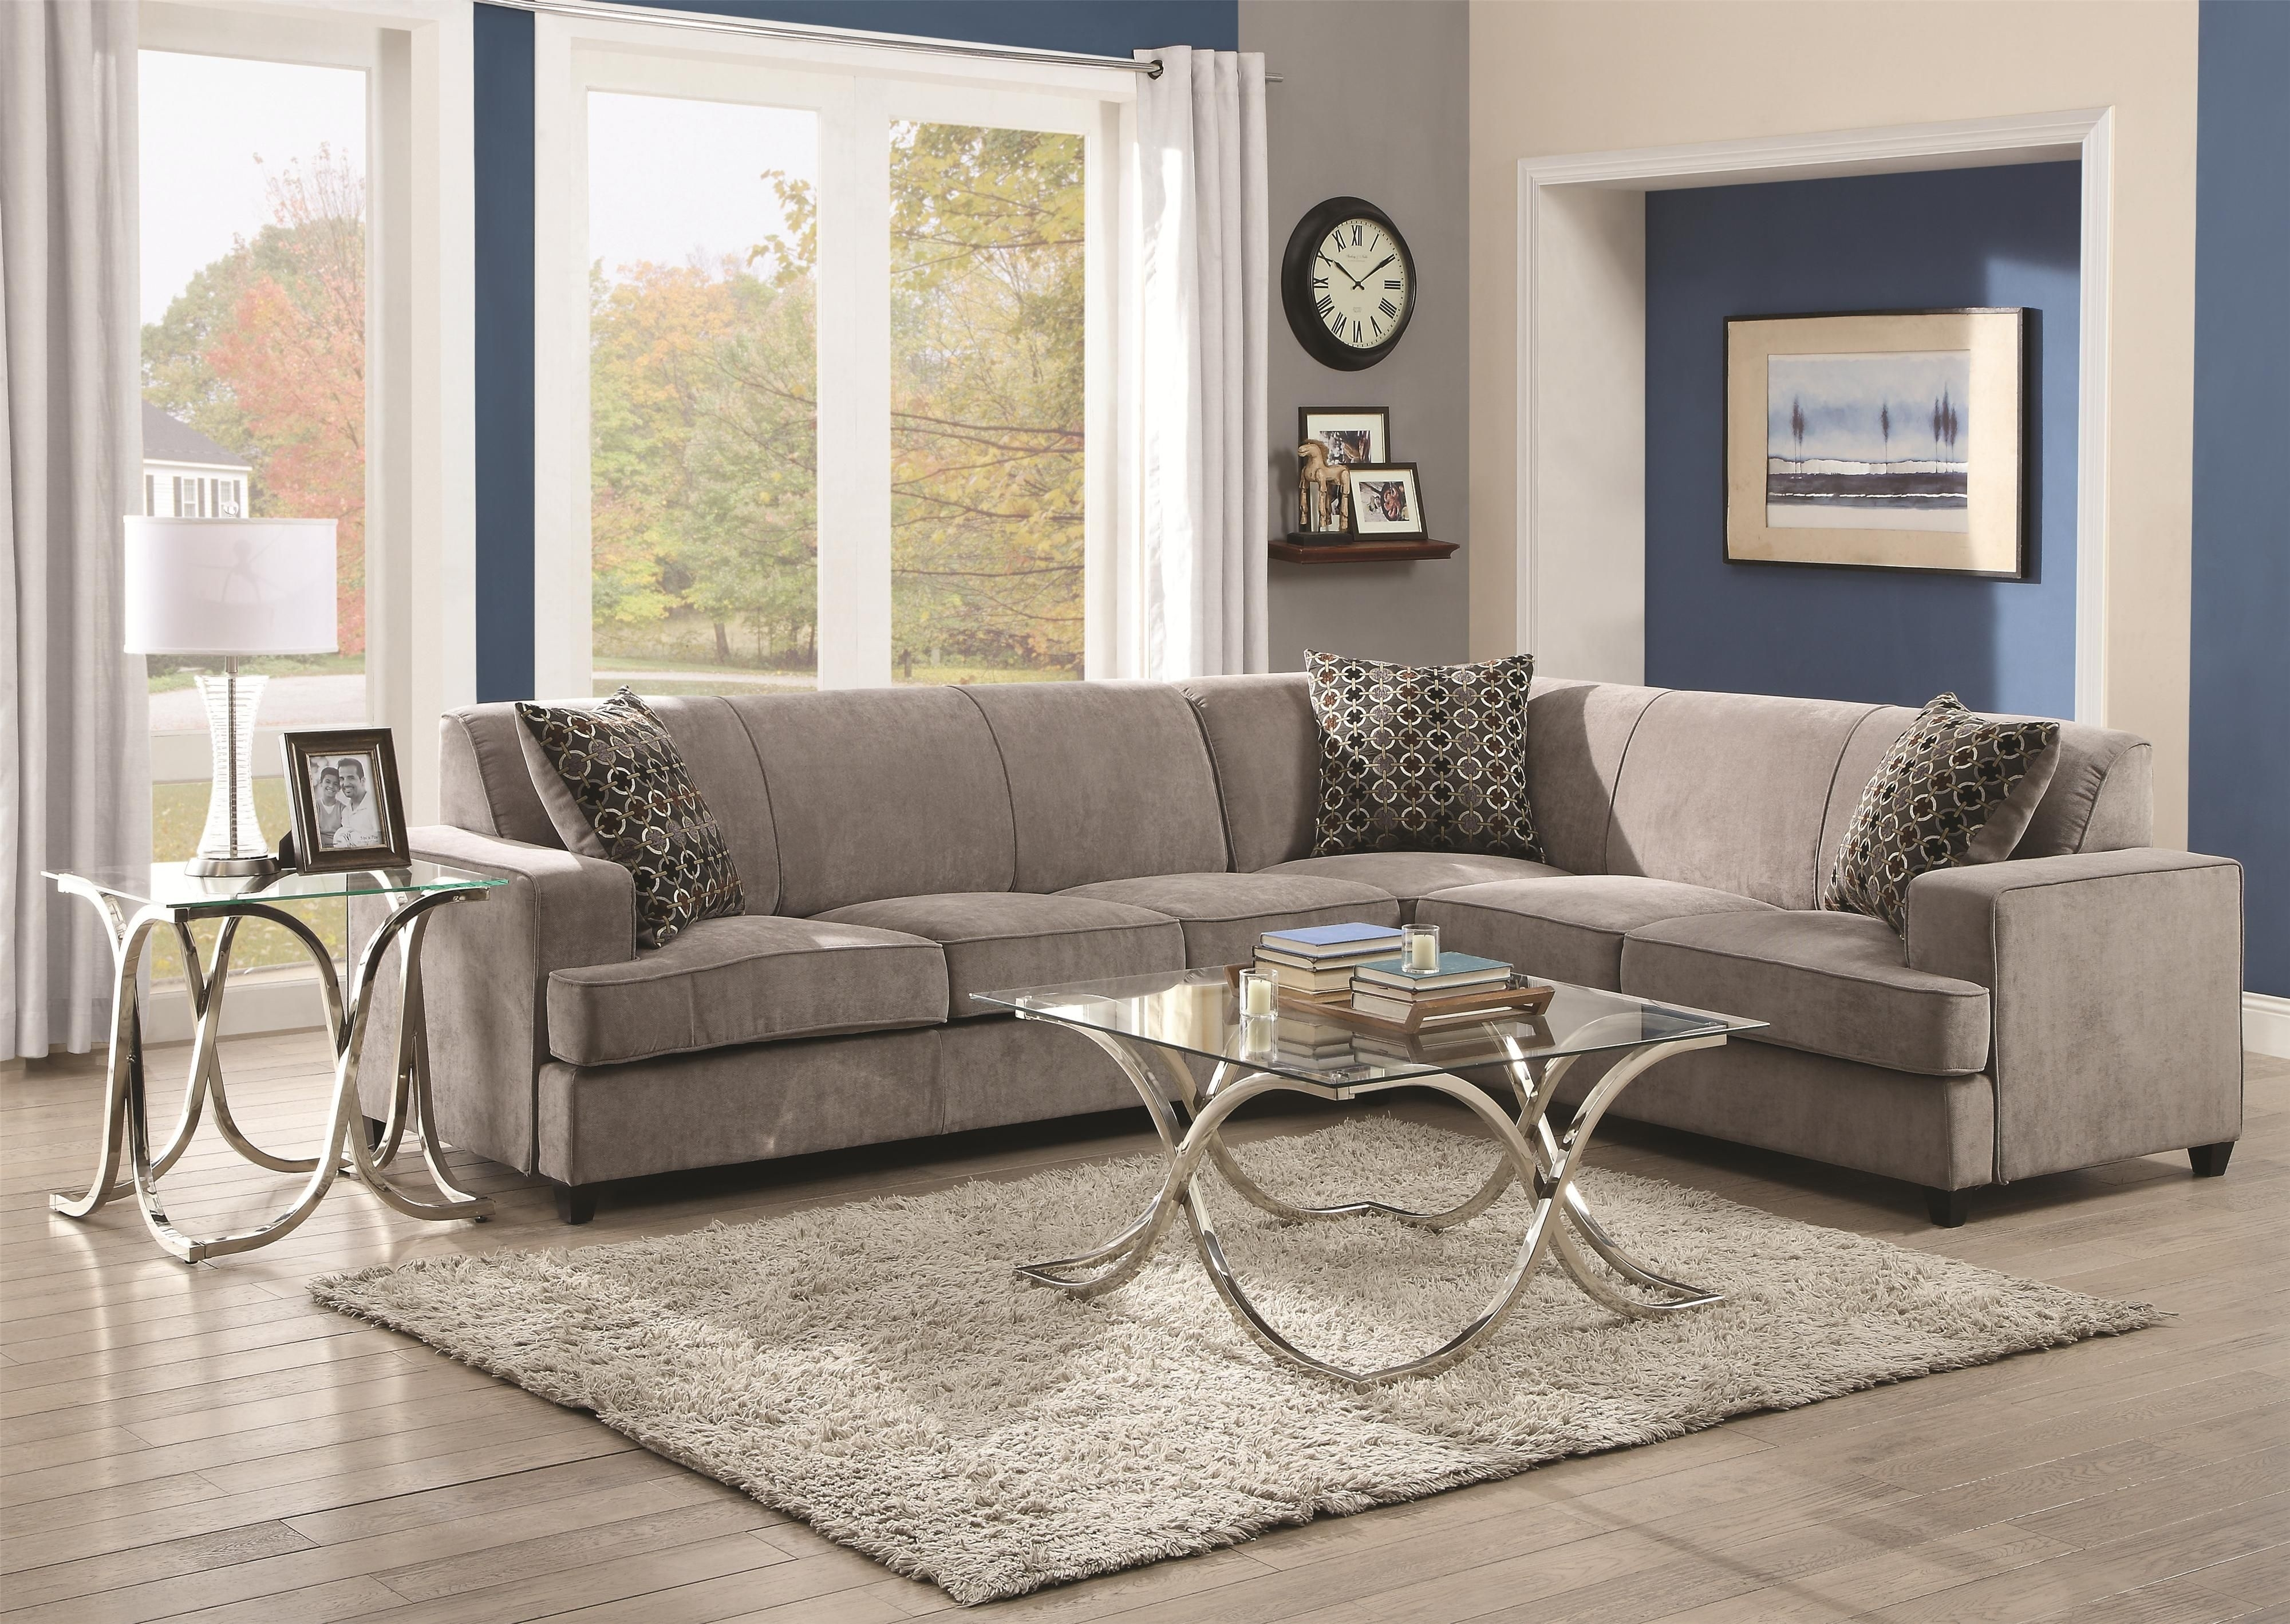 Tess Sectional Sofa For Cornerscoaster | Shades Of Grey in Norfolk Chocolate 6 Piece Sectionals With Raf Chaise (Image 30 of 30)